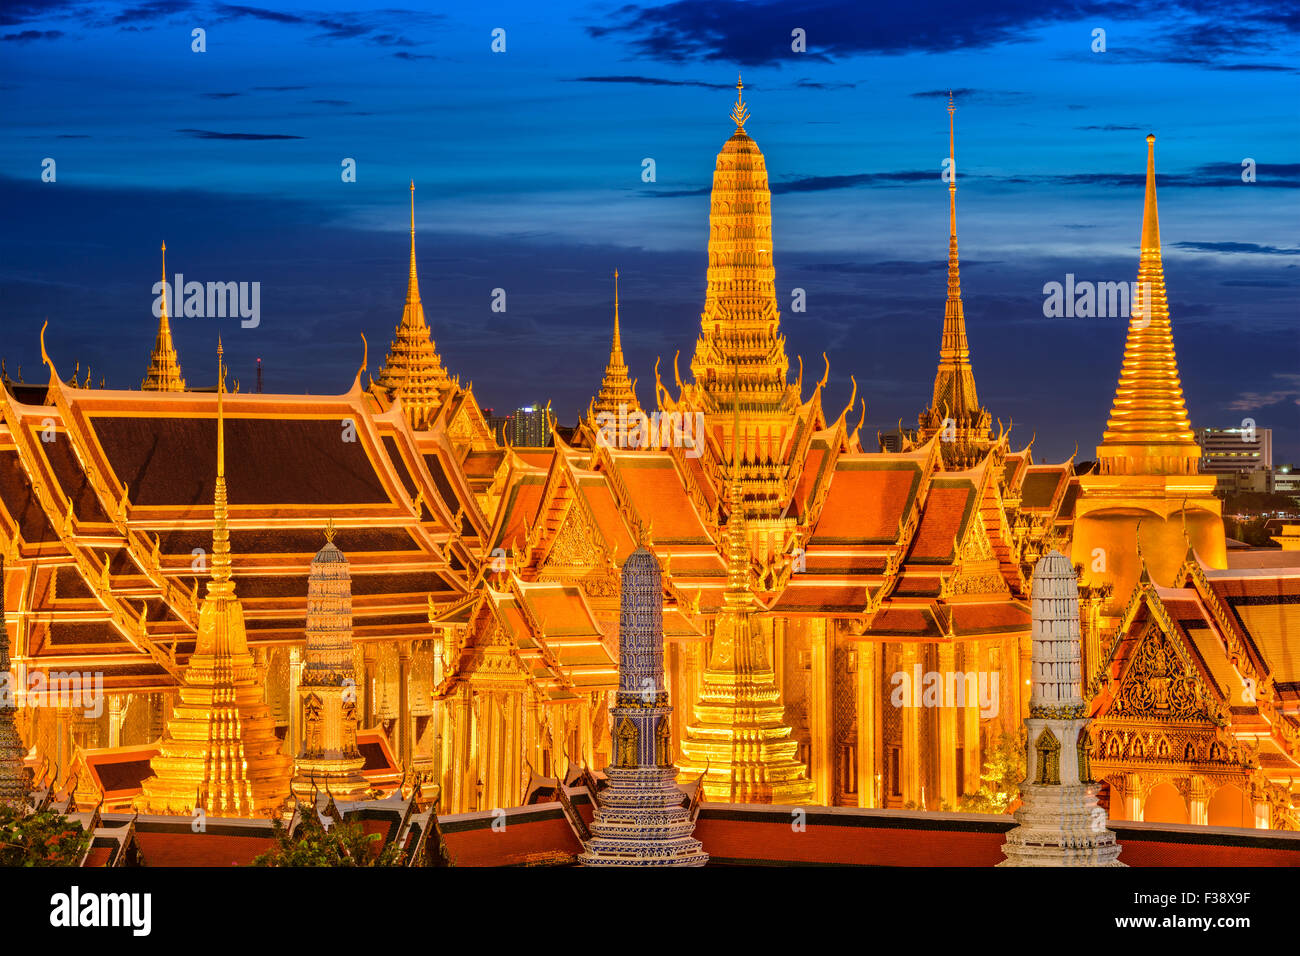 Bangkok, Thailand at the Temple of the Emerald Buddha and Grand Palace. - Stock Image